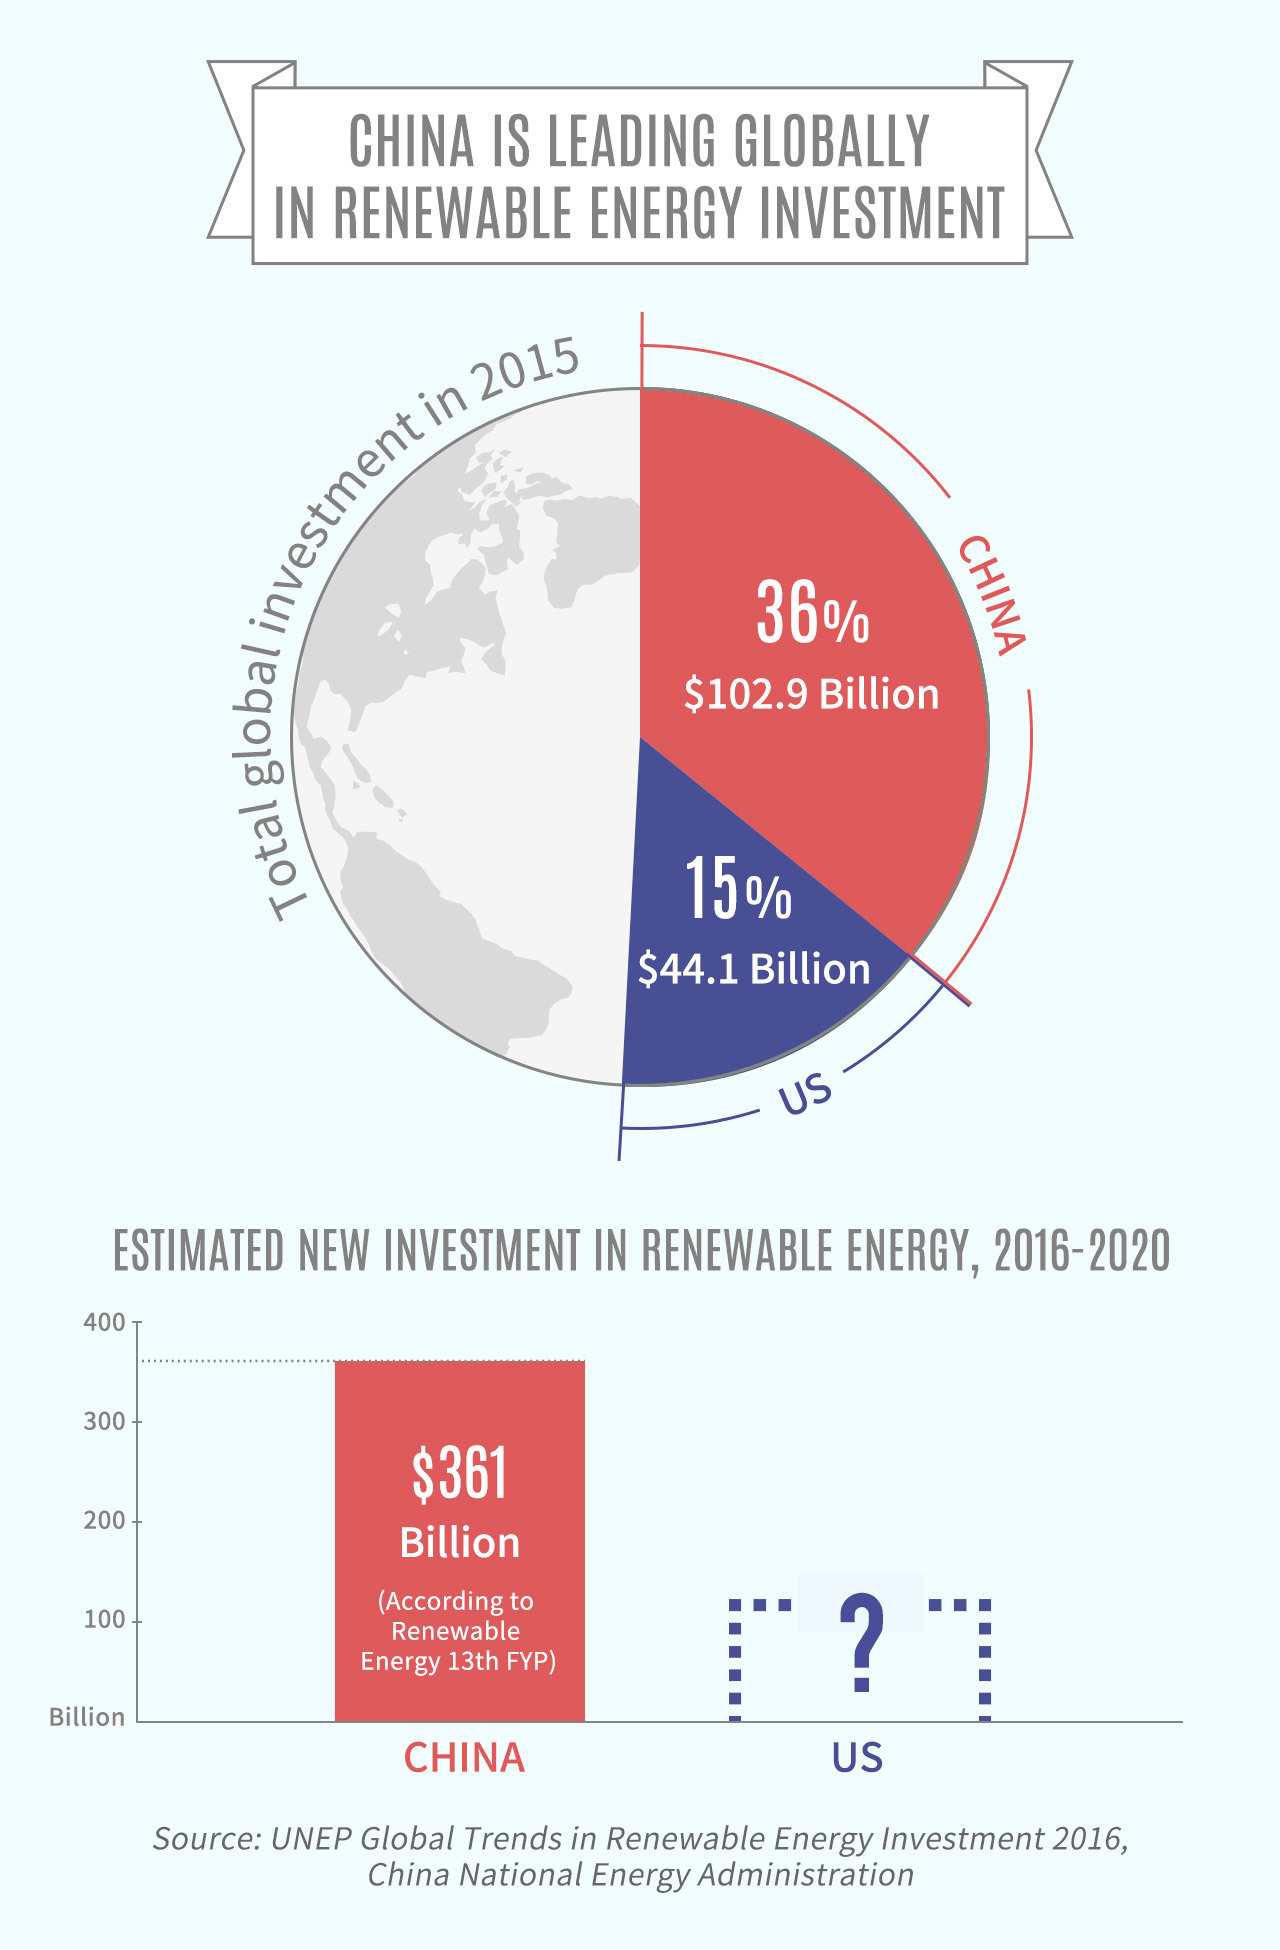 China is leading globally in renewable energy investment